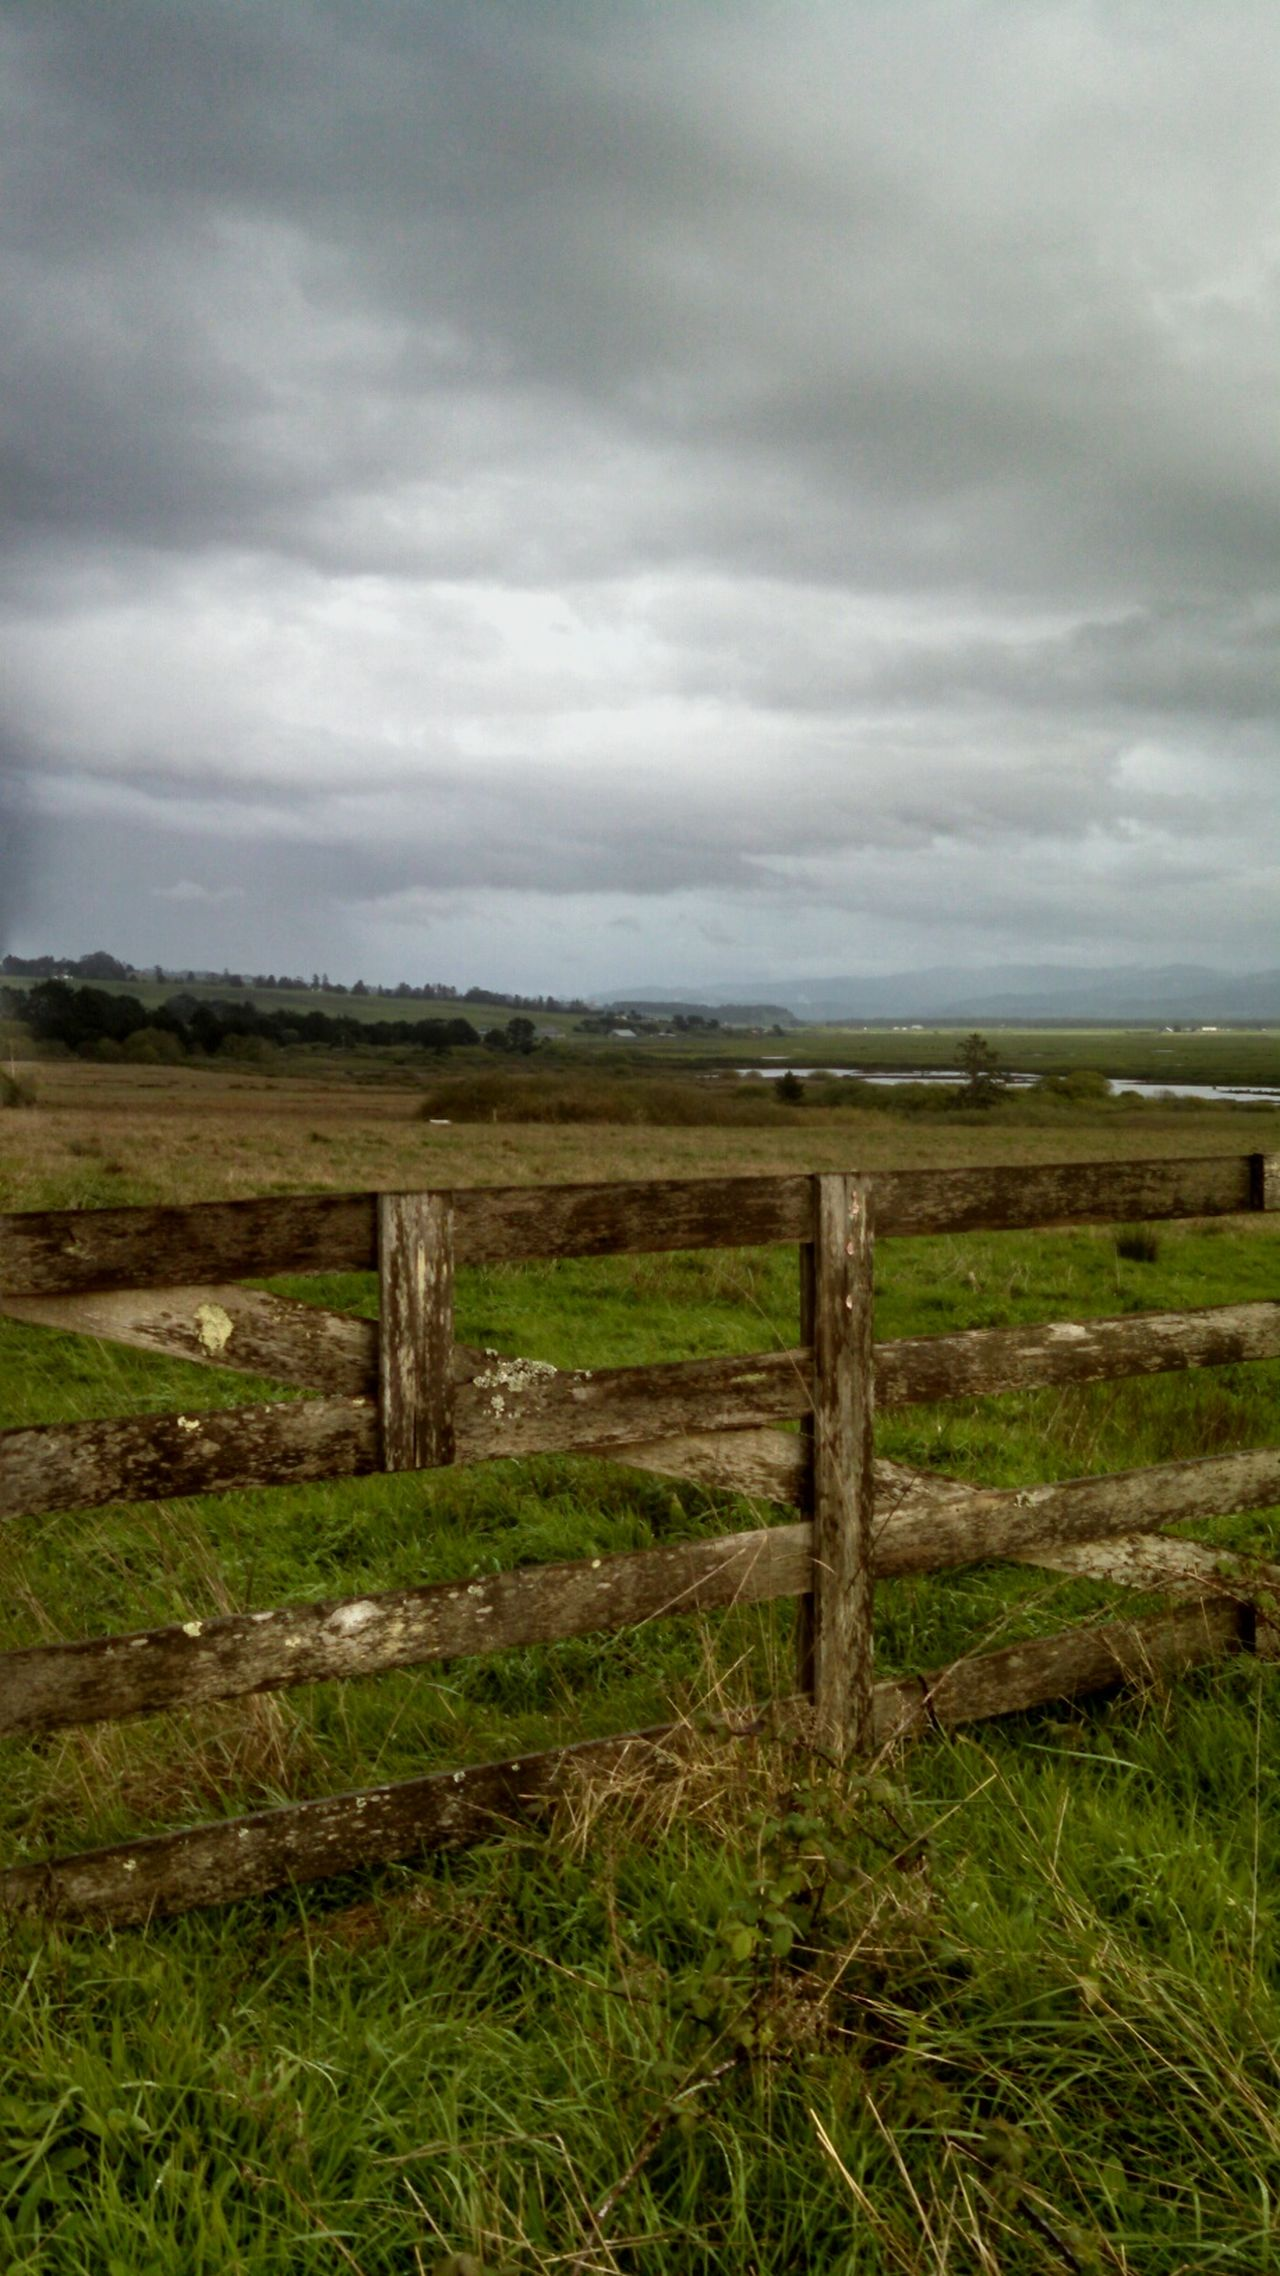 Taking Photos Enjoying Life Check This Out Exploring Old Fence Humboldt County Table Bluff Storm Clouds Smartphonephotography Motorola Lobuephotos Mobile Photography EyeEm Best Shots My Year My View